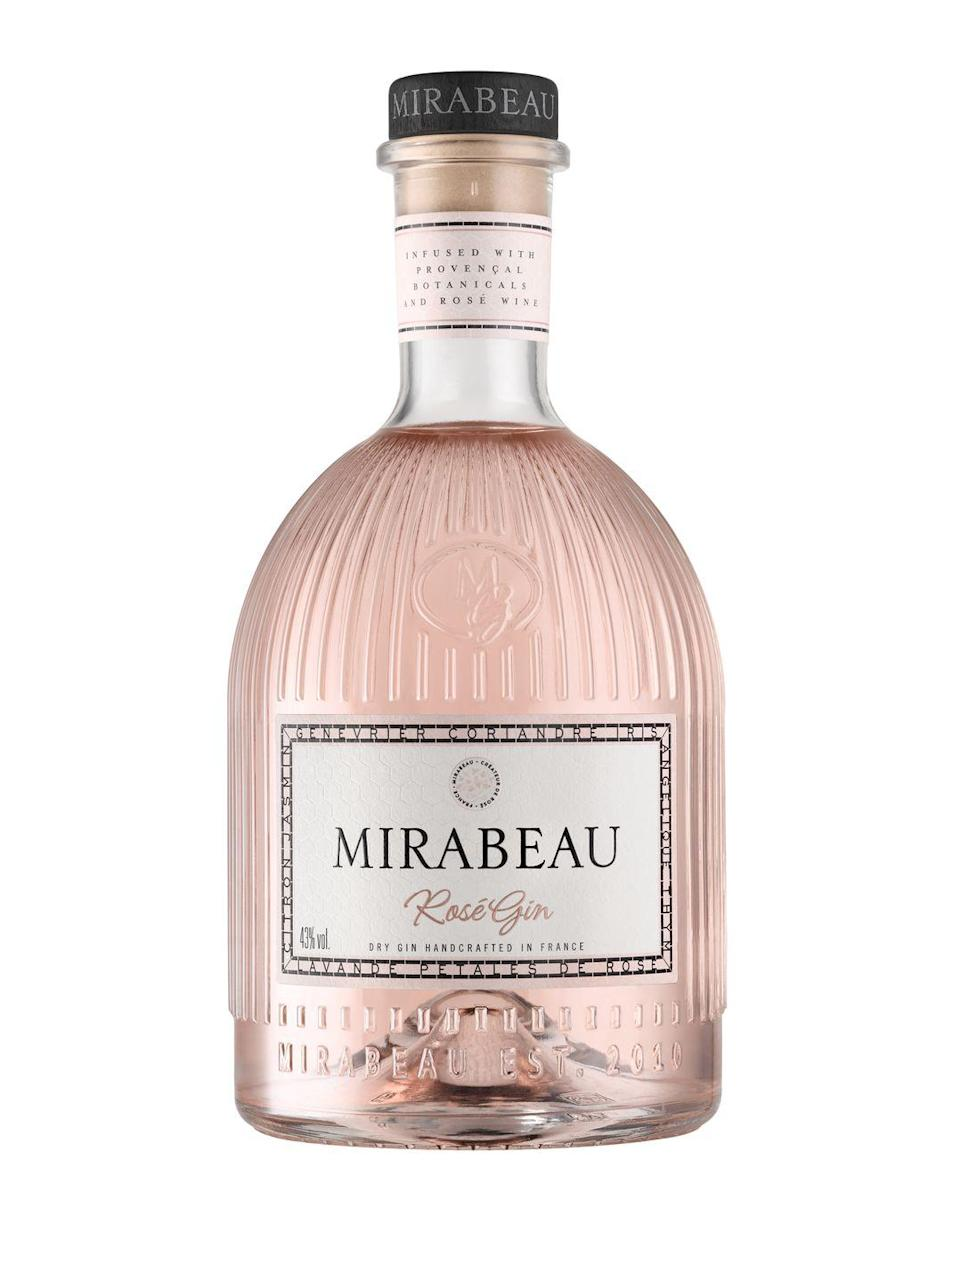 """<p><a class=""""link rapid-noclick-resp"""" href=""""https://go.redirectingat.com?id=127X1599956&url=https%3A%2F%2Fwww.waitrosecellar.com%2Fall-gin%2Fmirabeau-rose-gin-797717&sref=https%3A%2F%2Fwww.esquire.com%2Fuk%2Ffood-drink%2Fg32841250%2Fbest-gins%2F"""" rel=""""nofollow noopener"""" target=""""_blank"""" data-ylk=""""slk:SHOP"""">SHOP</a></p><p>This may be a pink gin but the hue is so pale you'll barely notice, especially if you're mixing it. Made by English winemakers known for their Provence rosés, it's starting spirit is purely grape-based and there's a dash of rosé in there too, which lends it a wine-like quality with delicate red-fruit and rosy flavours. Truly sophisticated, it could easily be drunk neat, but if you prefer some dilution then choose a lighter tonic and garnish with a sprig of lavender or rosemary.</p><p>£35 / 70cl; 43% ABV</p>"""